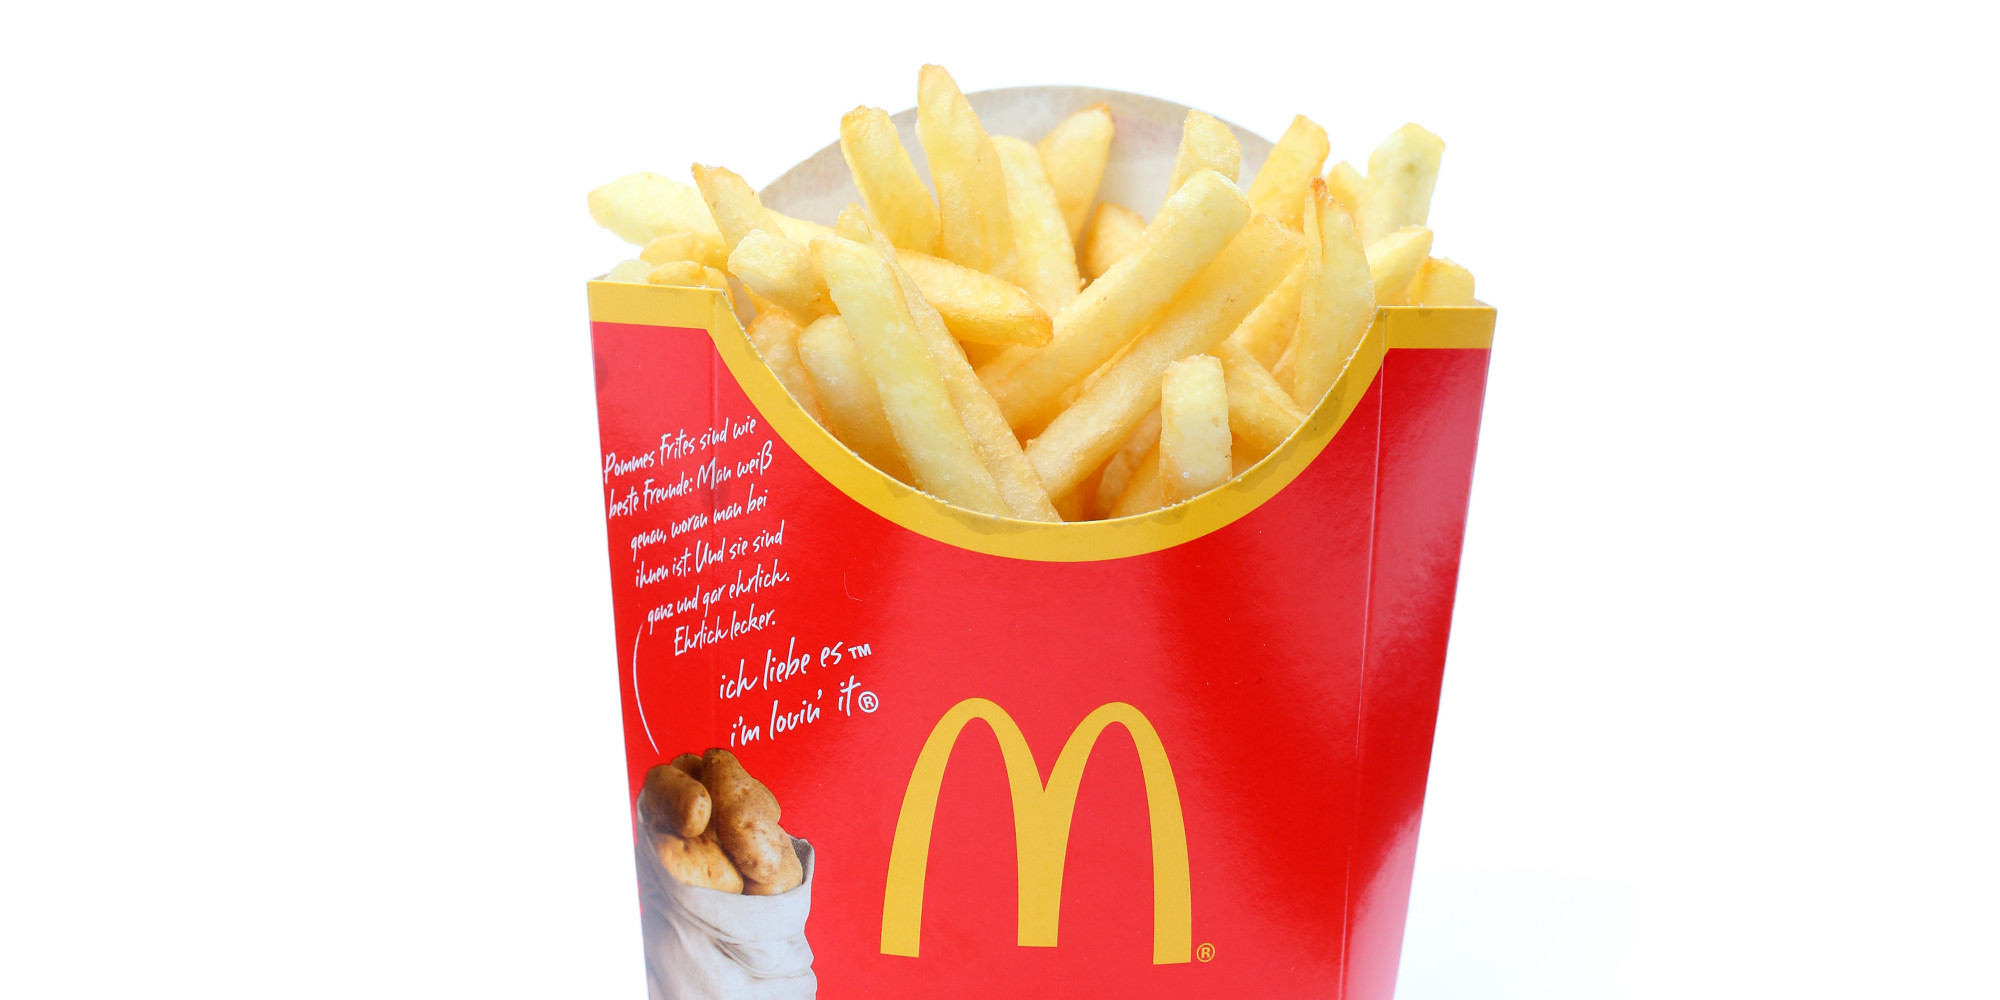 Heres What A McDonalds Meal Looks Like When Its Been Left For 10 Years o MCDONALDS FRIES facebook